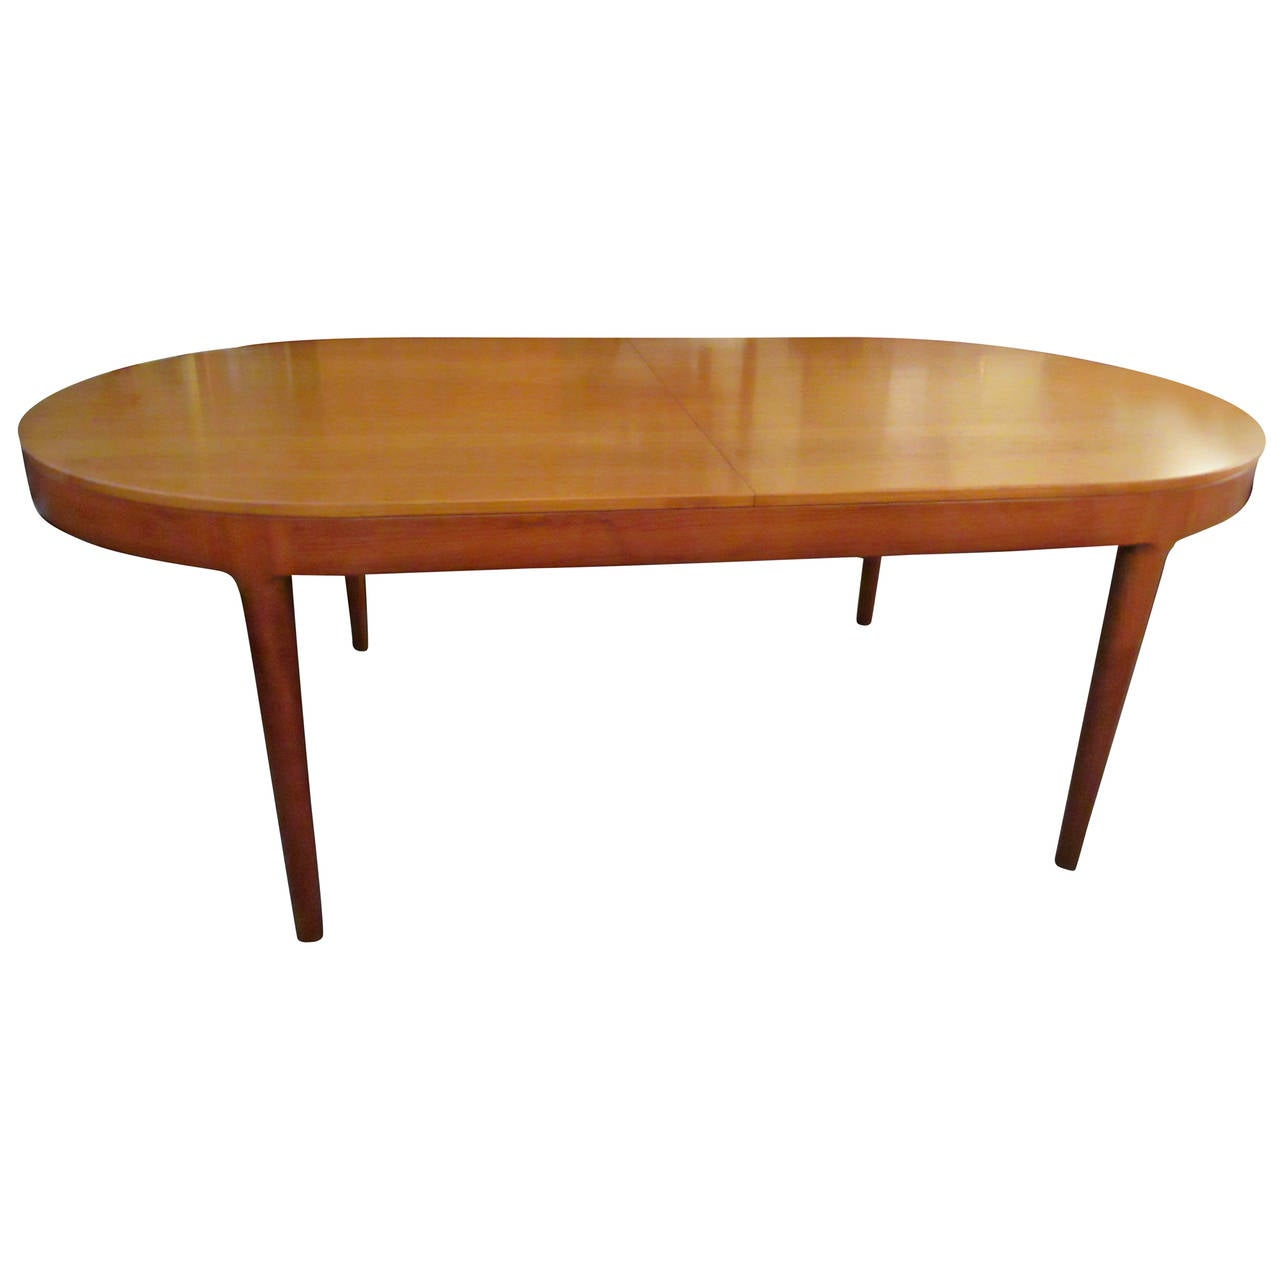 Moreddi Oval Danish Teak Dining Table At 1stdibs